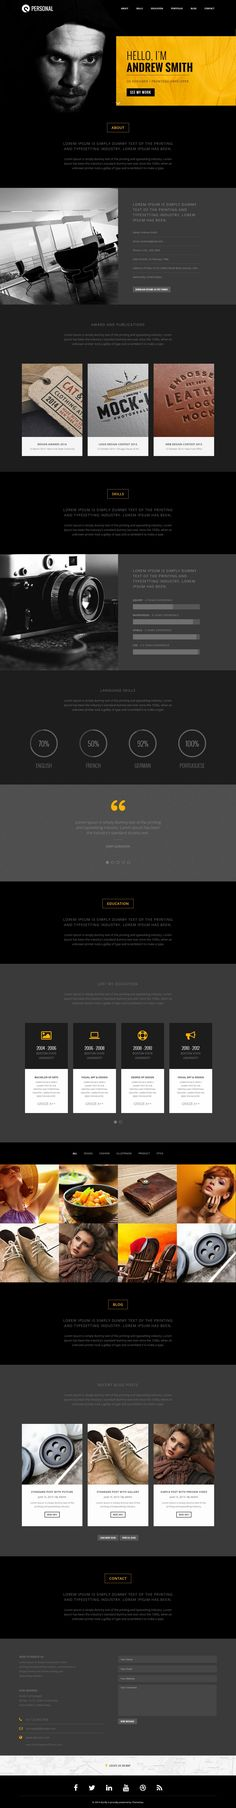 Personal Resume Portfolio One Page Bootstrap Template #CV #webdesign